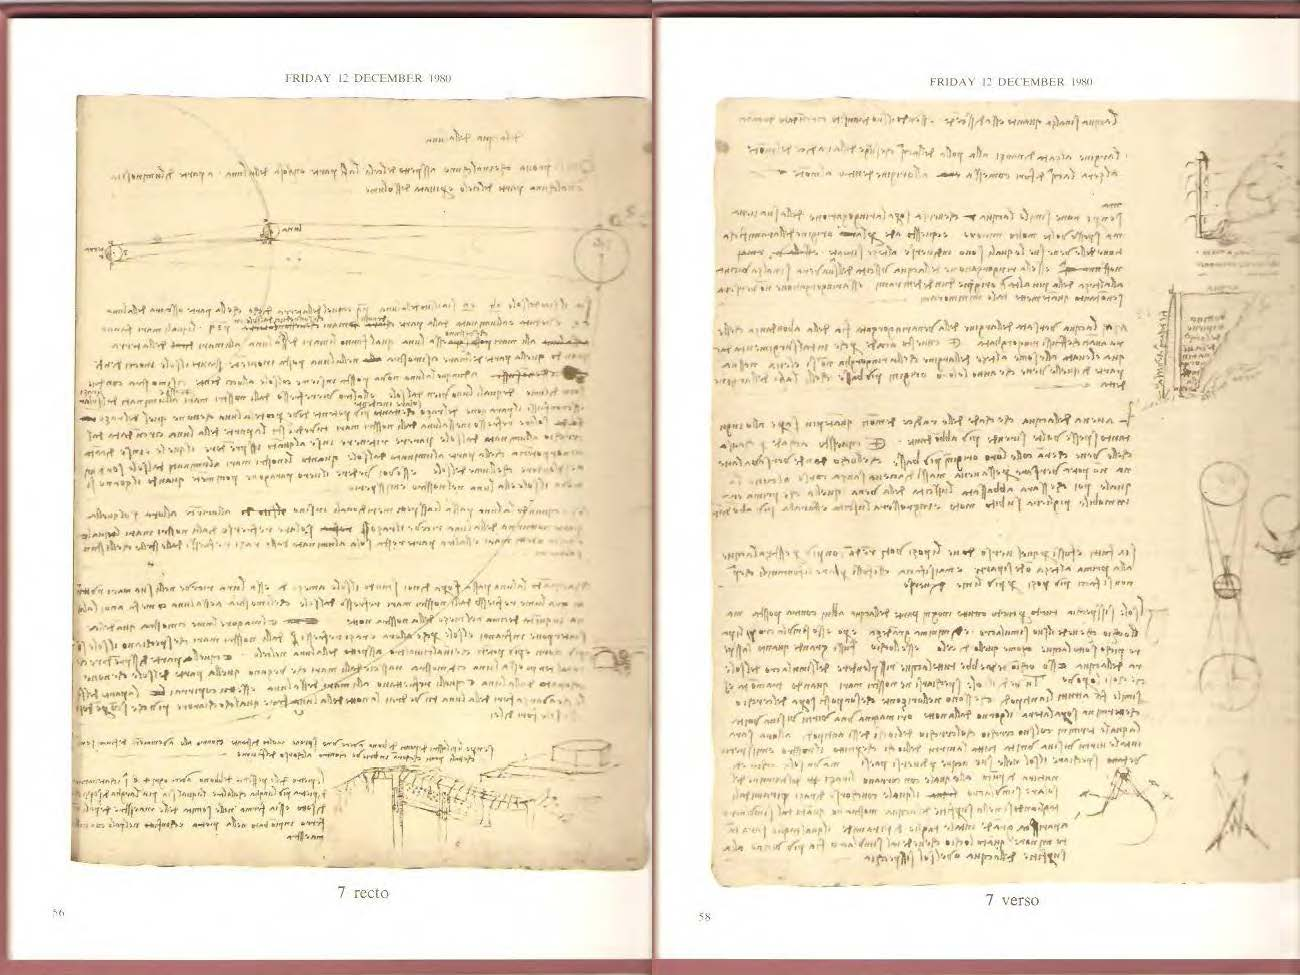 Codex_Leicester_Page_08_Image_0001.jpg